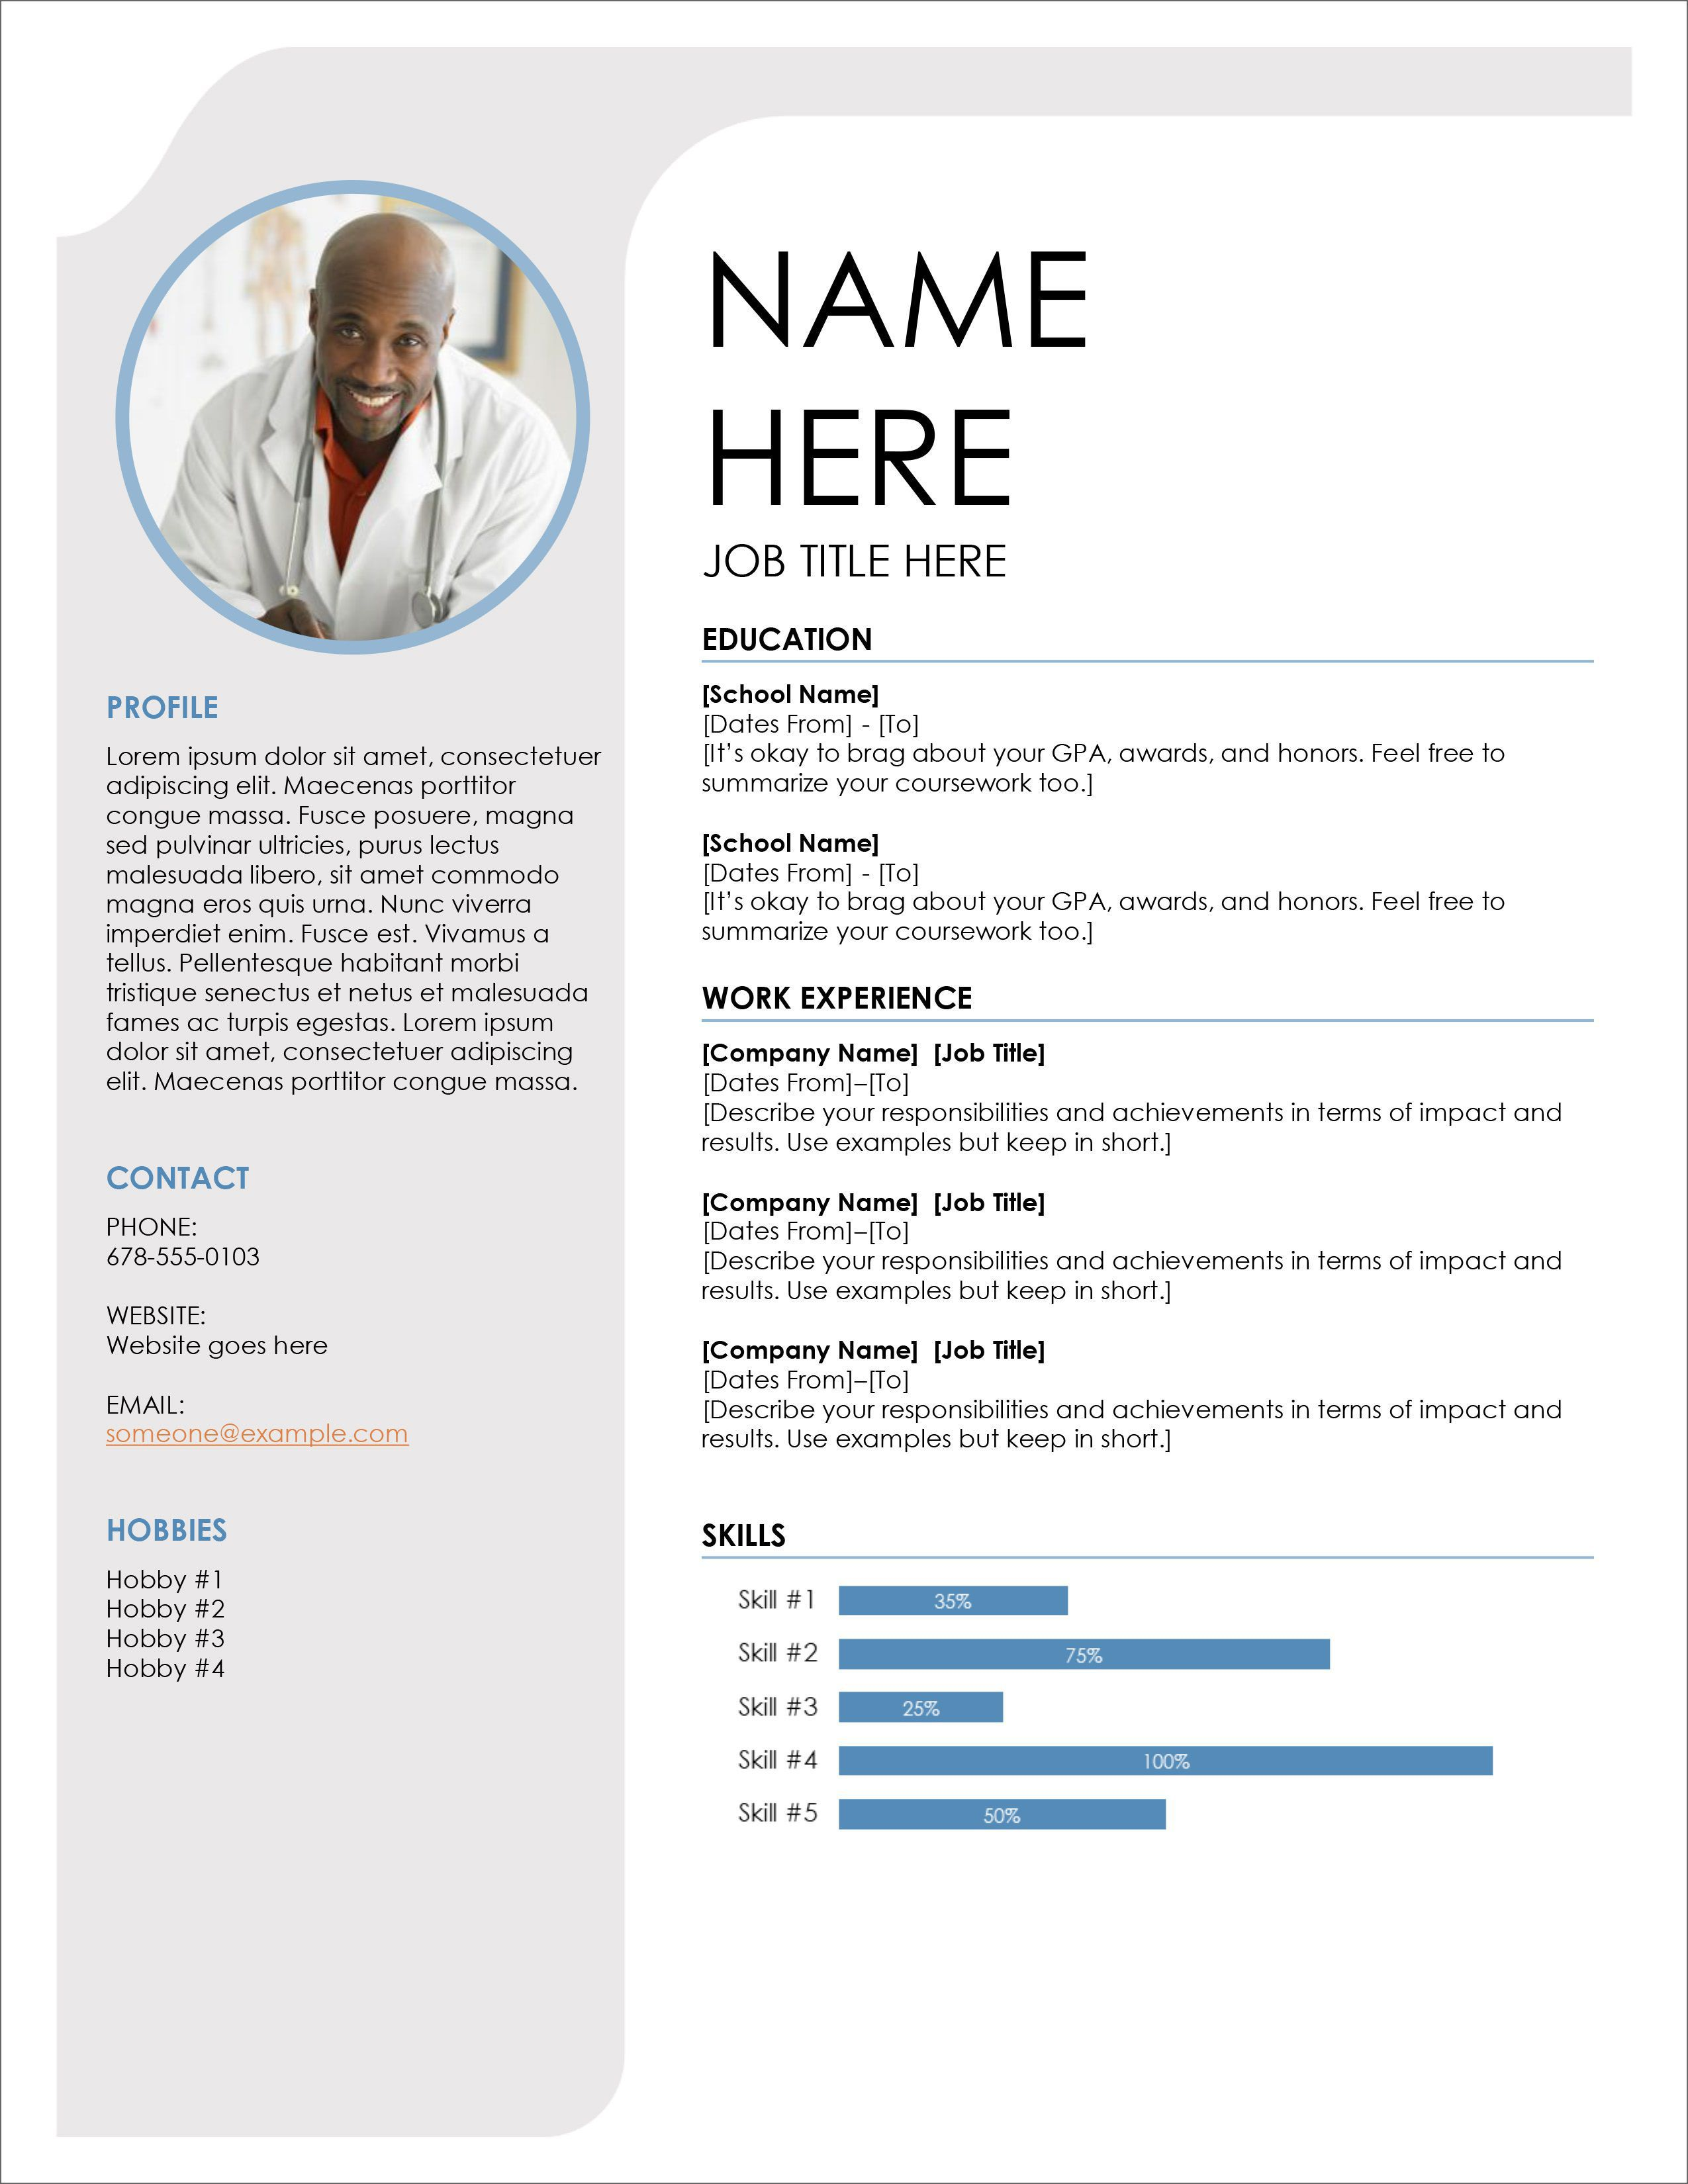 005 Incredible Download Free Resume Template Word 2018 Inspiration Full